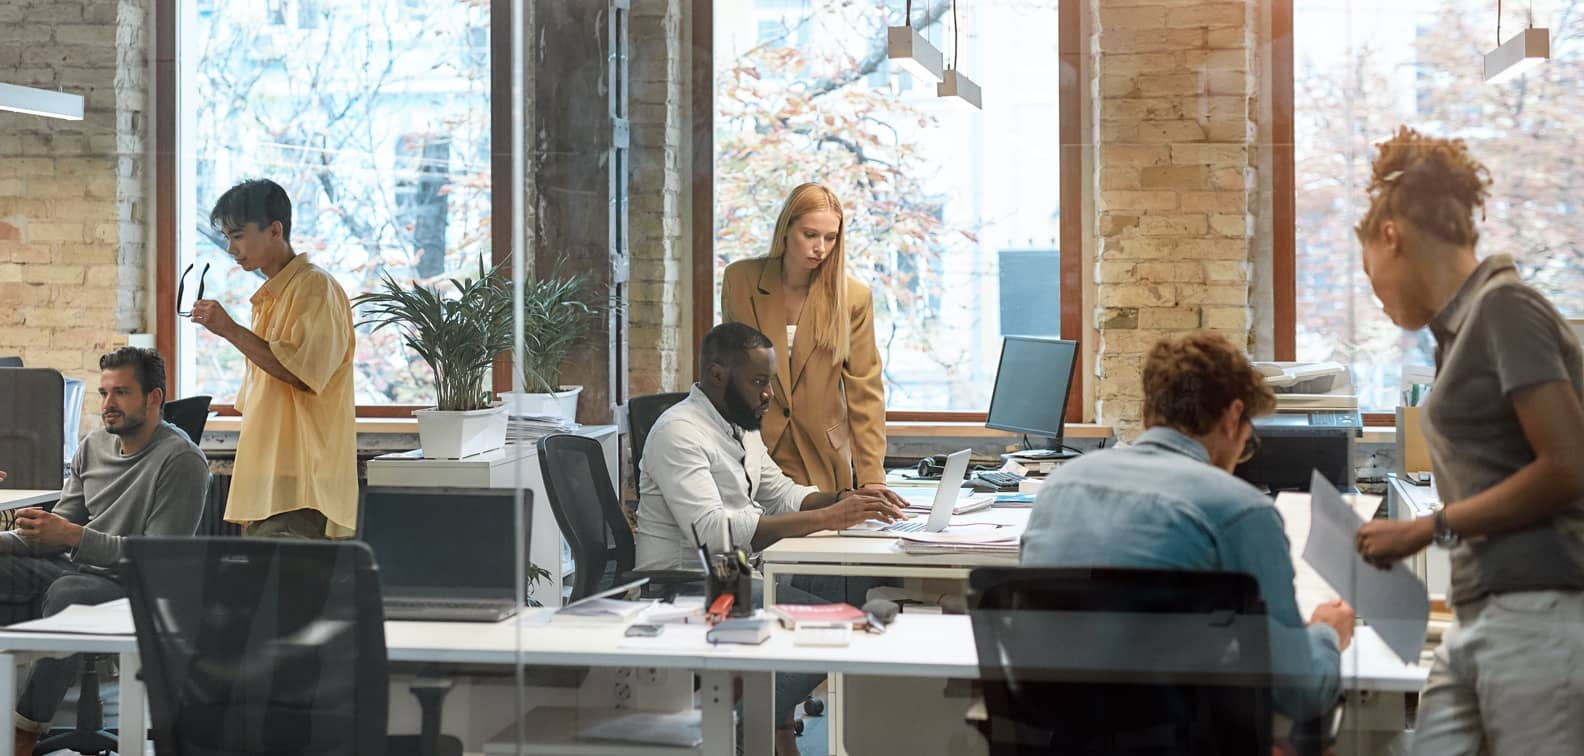 Diverse team of young professionals collaborating in an open-plan office